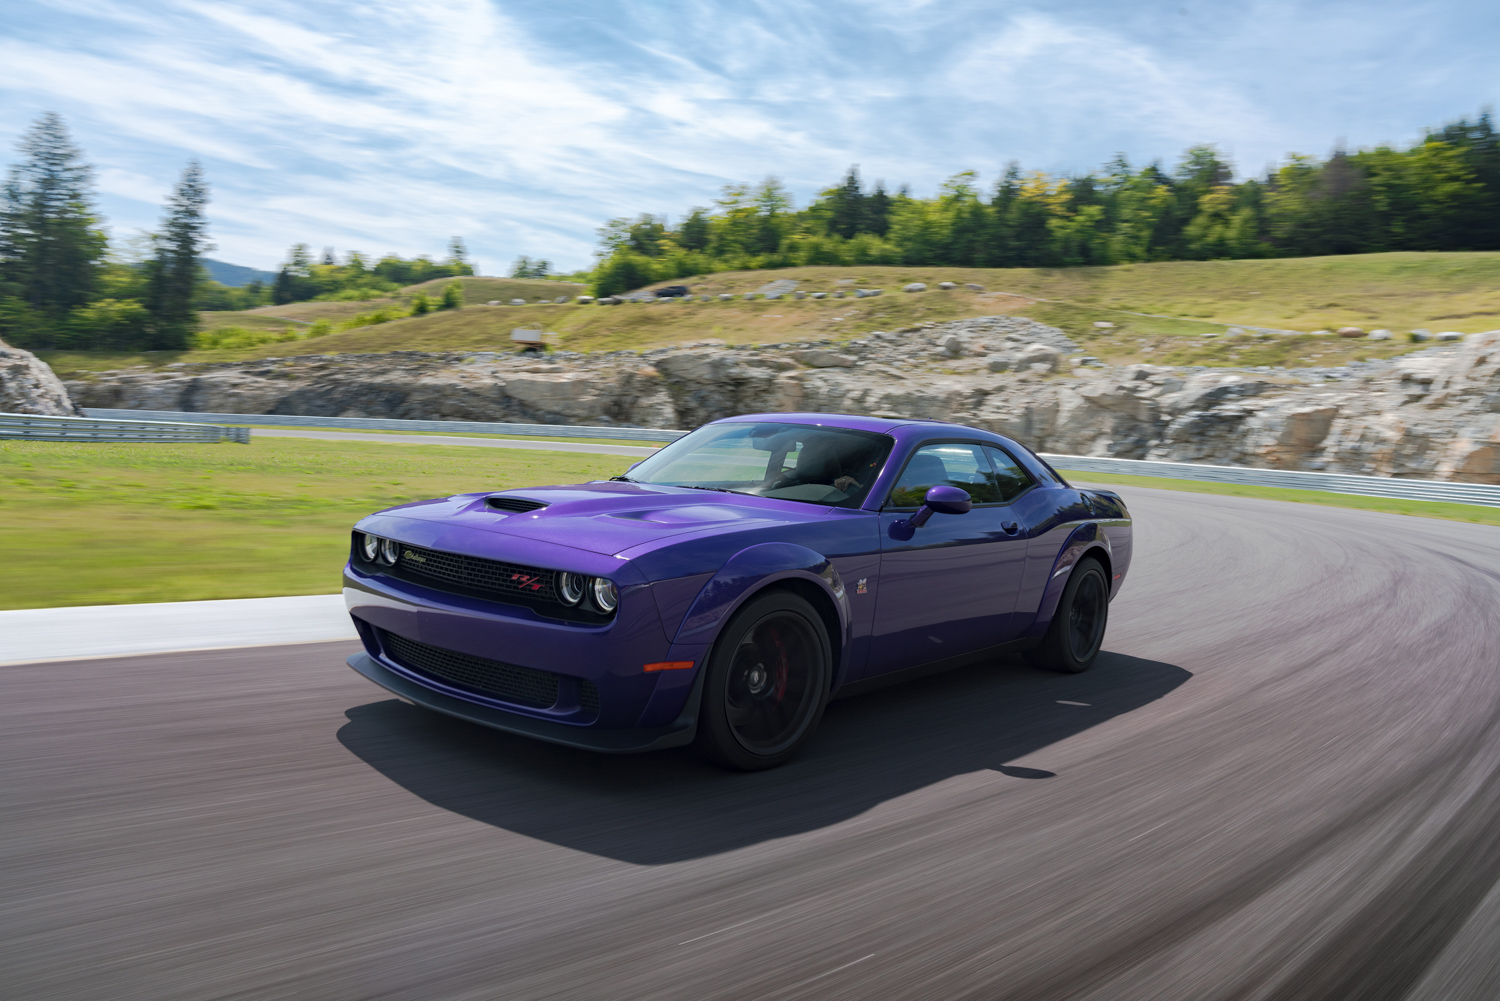 2019 Challenger R/T Scat Pack Widebody on track drivers side